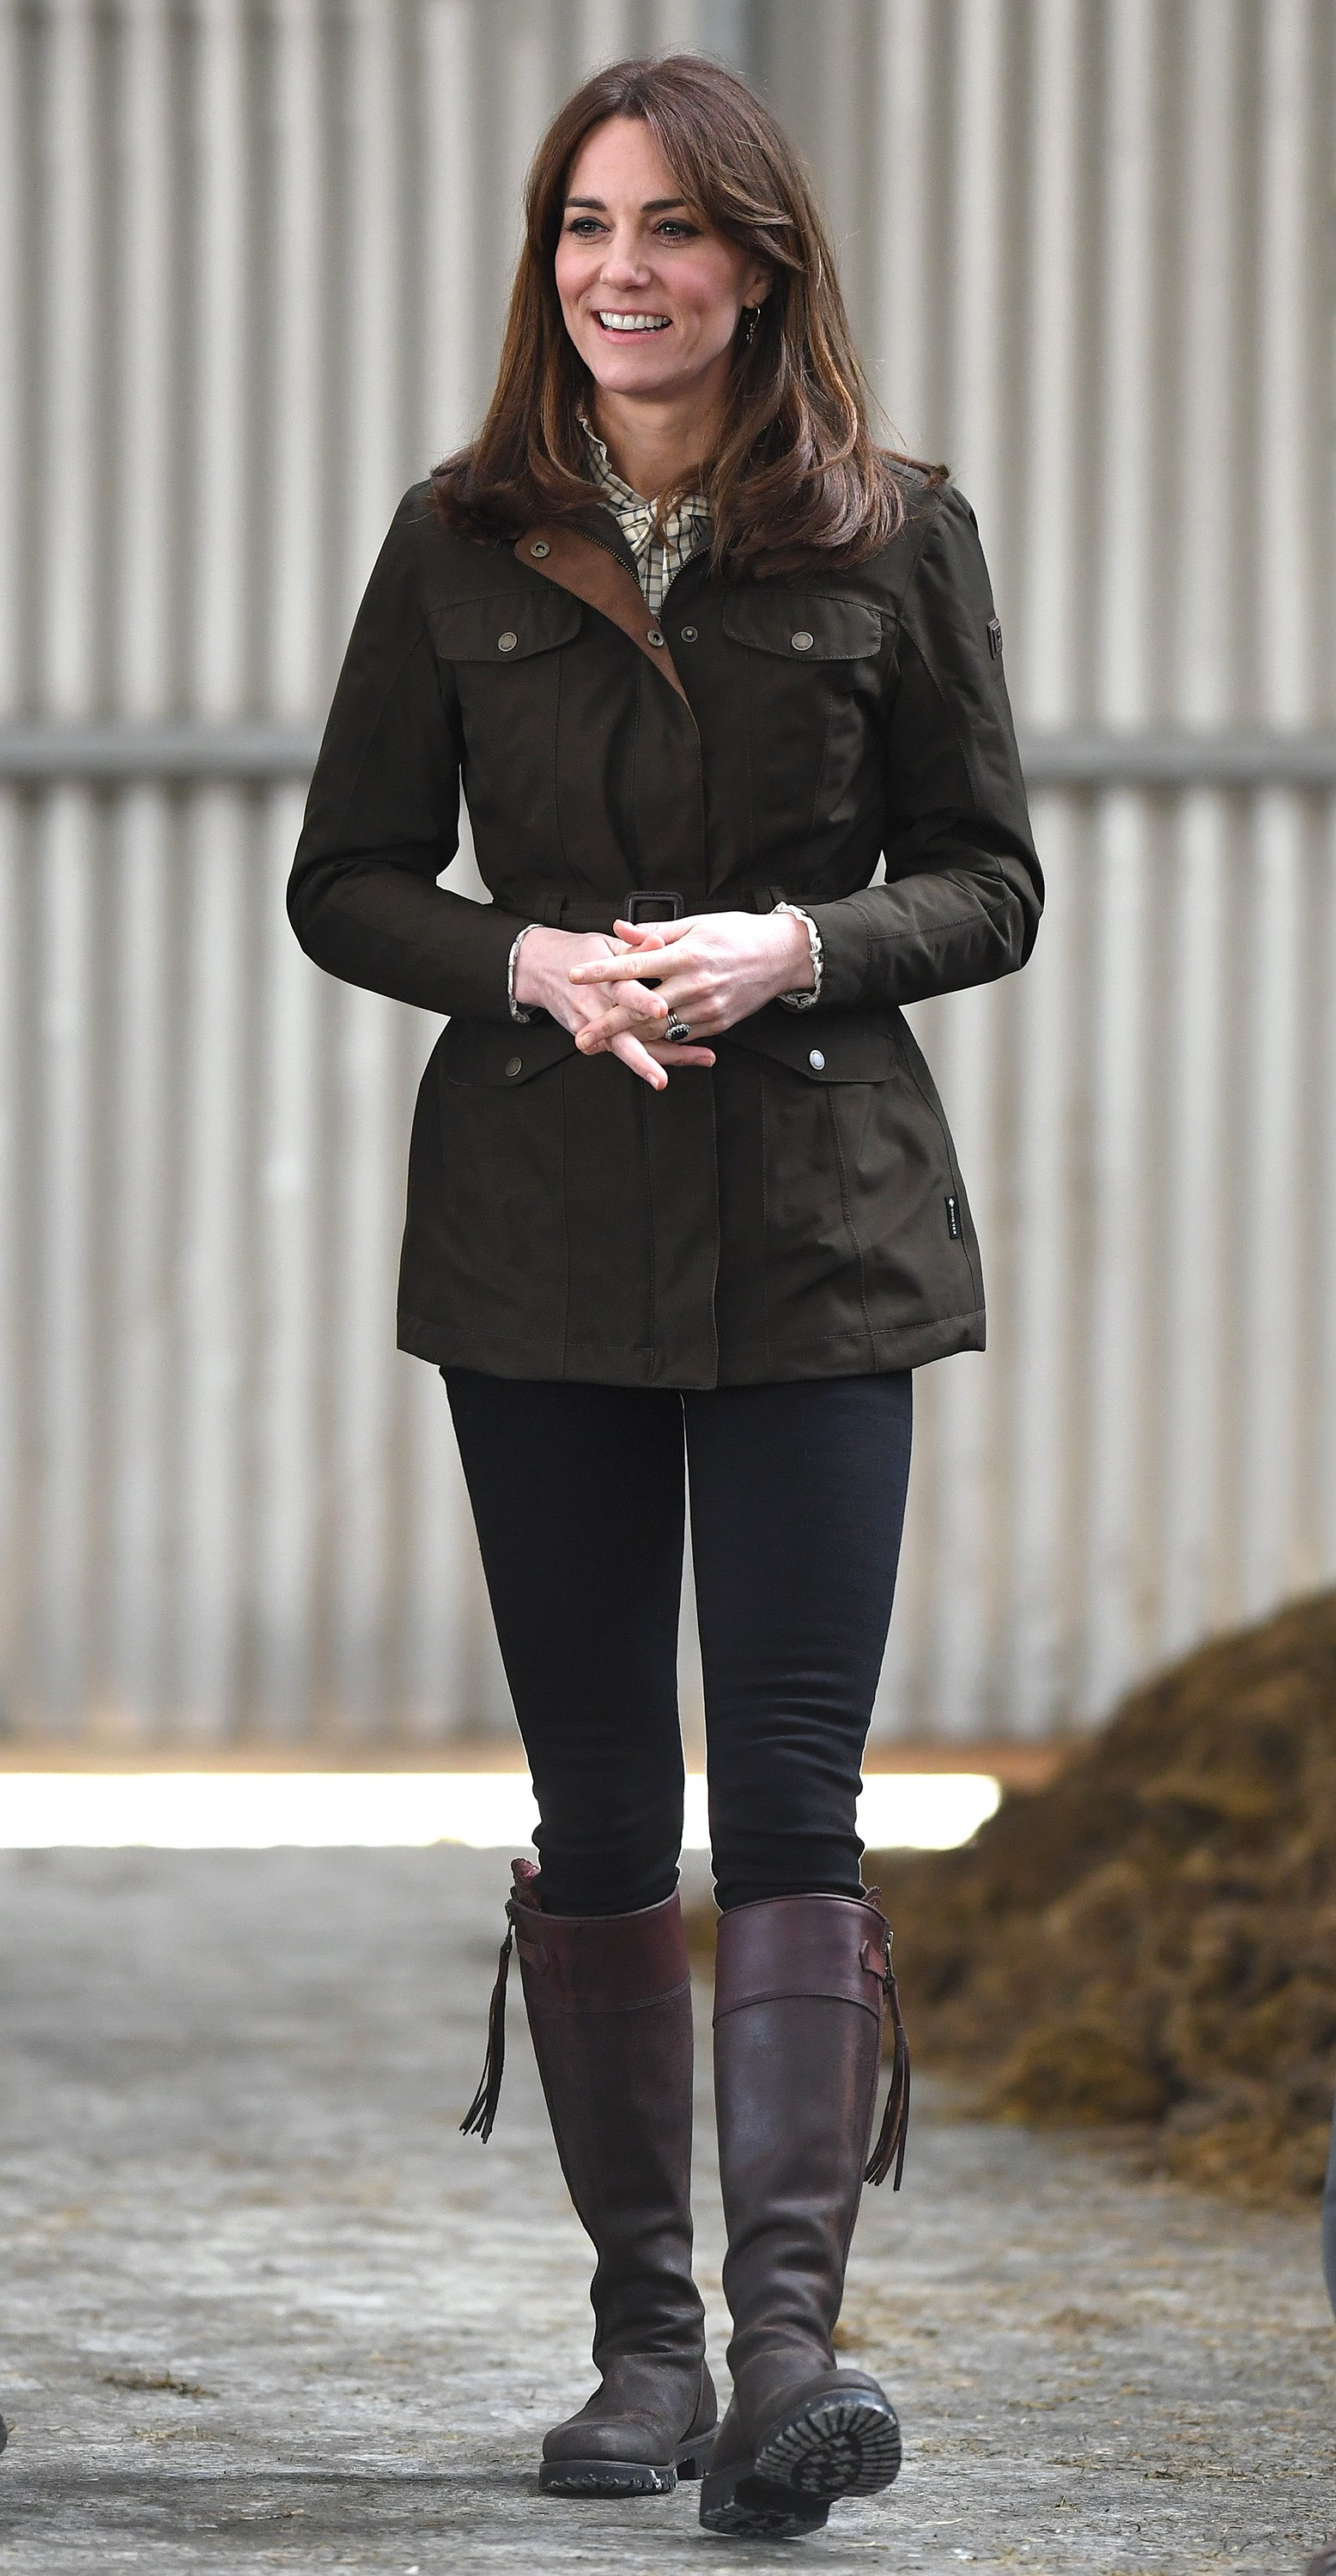 Kate Middleton pictured in her boots at Teagasc Research Farm' in 2020, Carlow, Ireland. | Photo: Getty Images